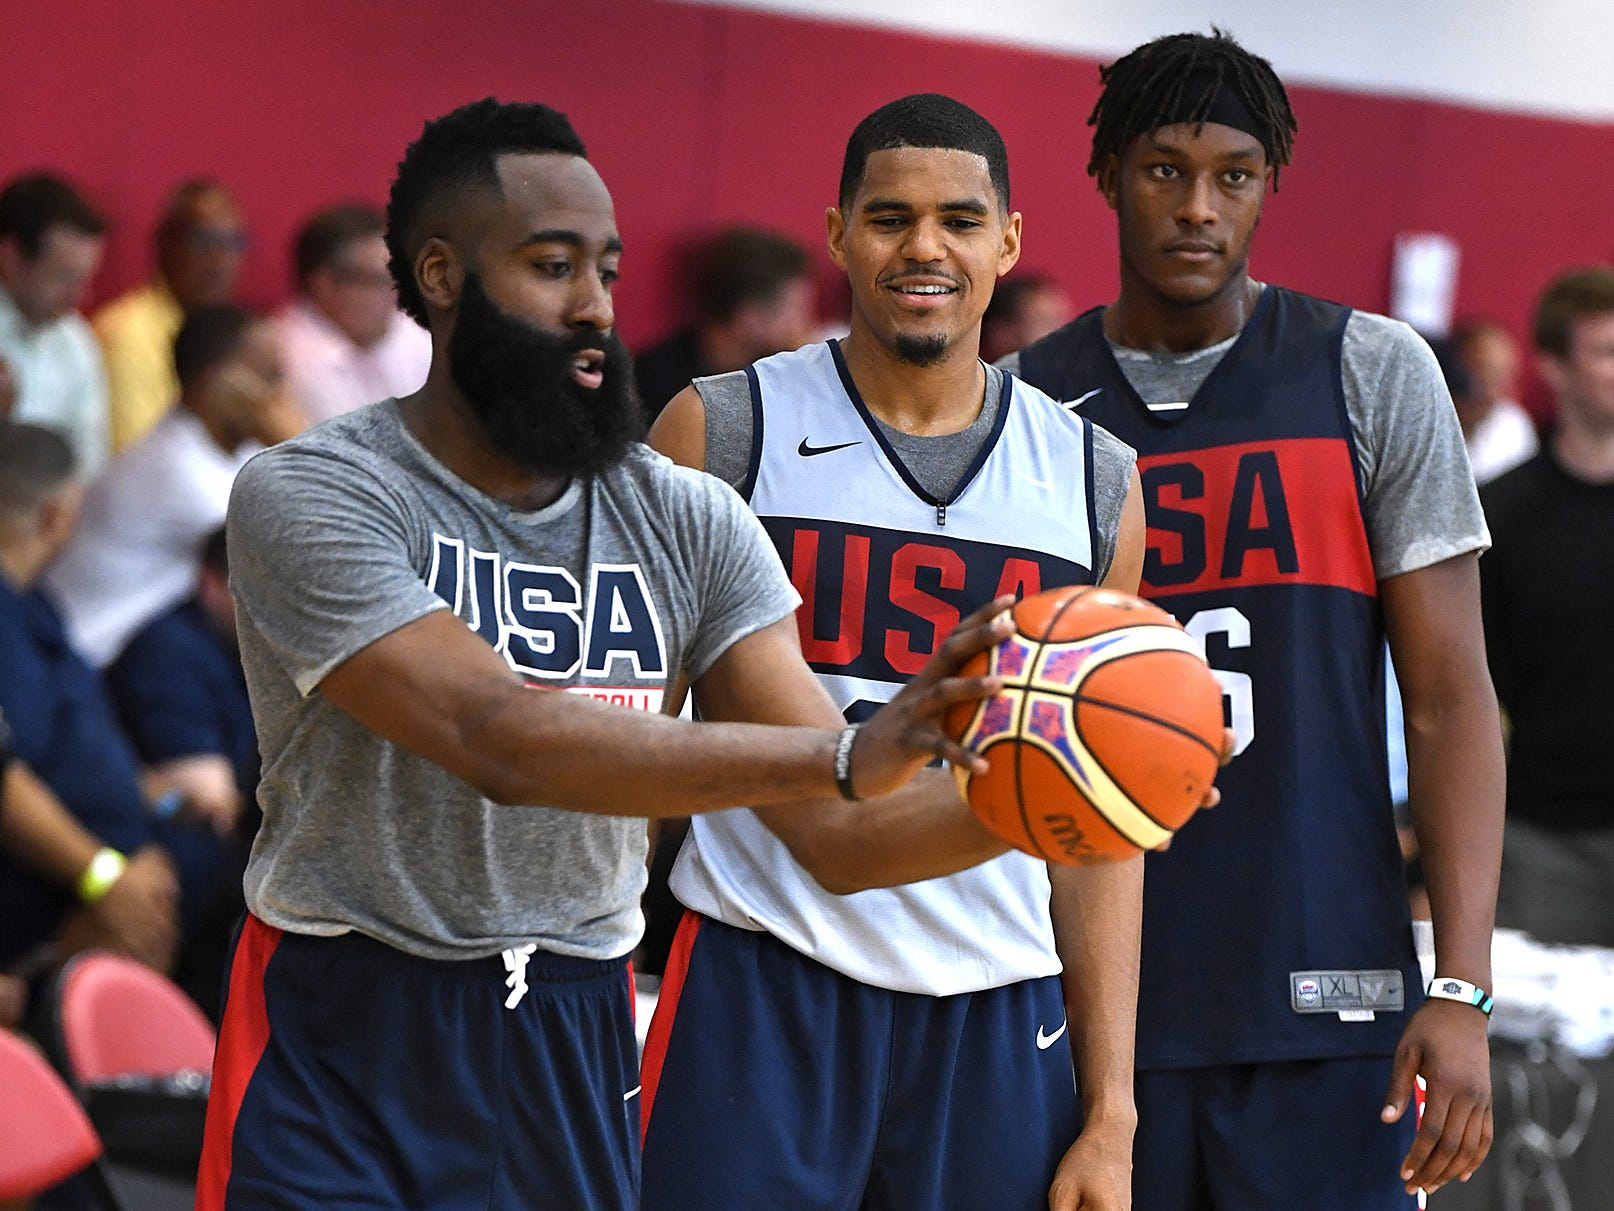 James Harden demonstrates proper shooting grip to Tobias Harris during the 2018 USA Basketball National Team Minicamp.